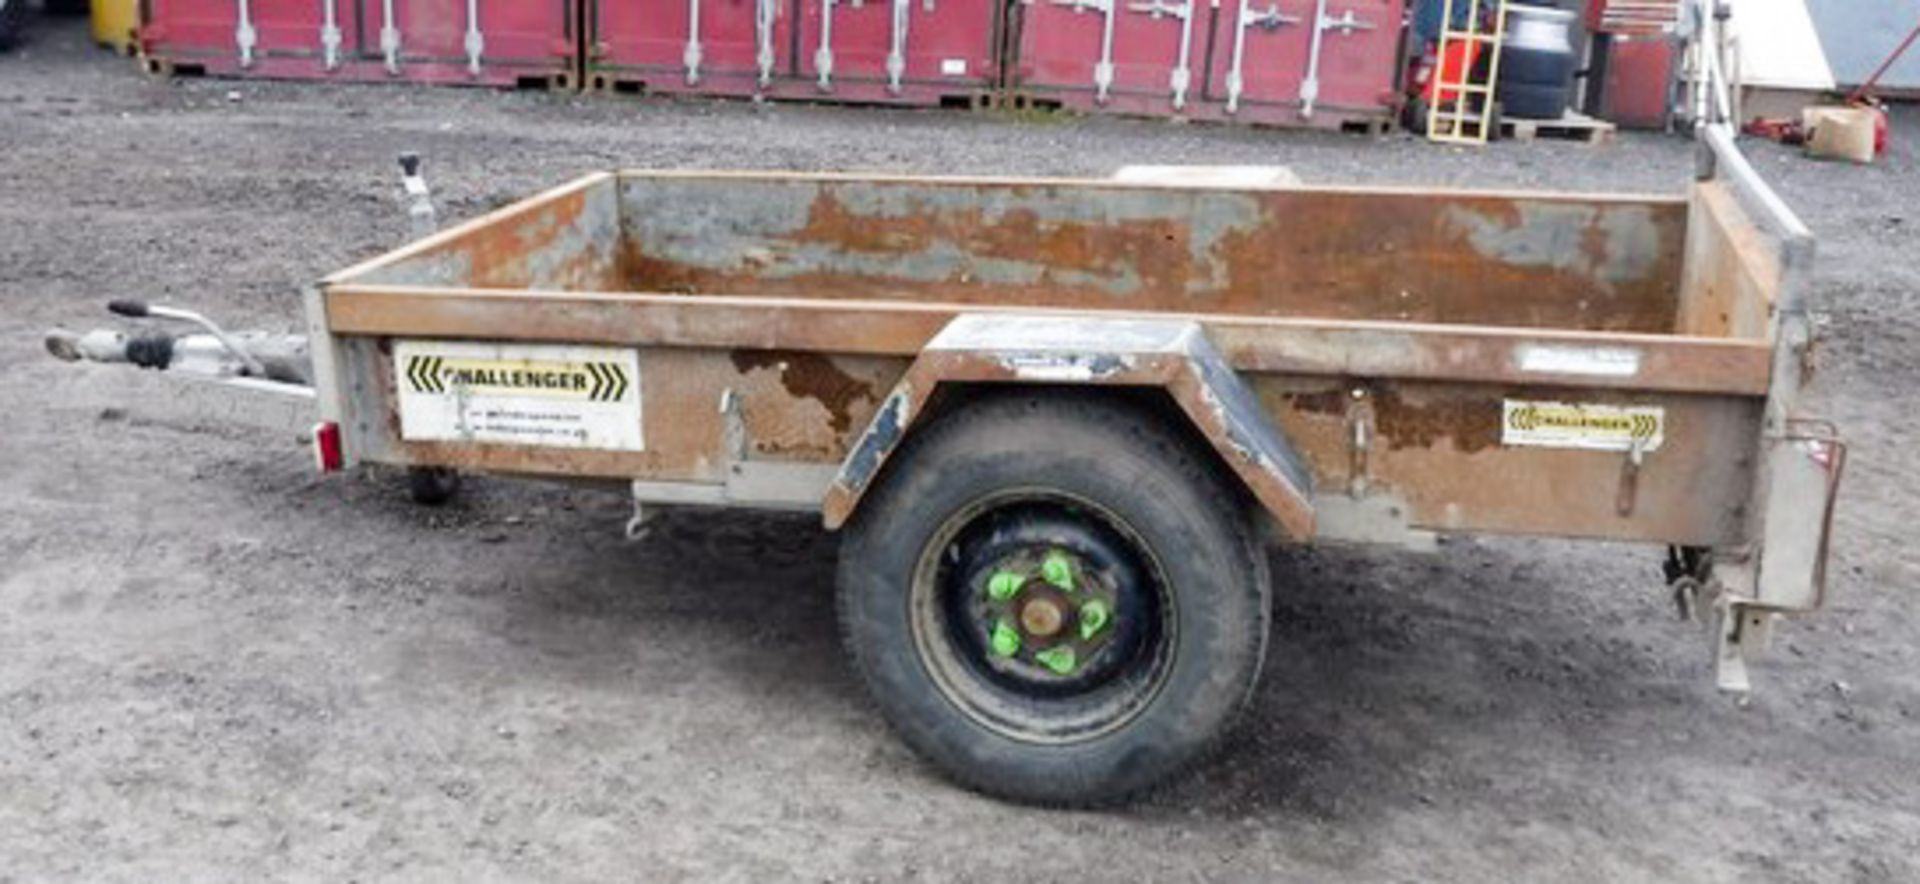 Lot 1403 - INDESPENSION CHALLANGER SINGLE AXLE TRAILER 8X4 C/W TAILGATE SN - G38405 ASSET NO - 758-3027